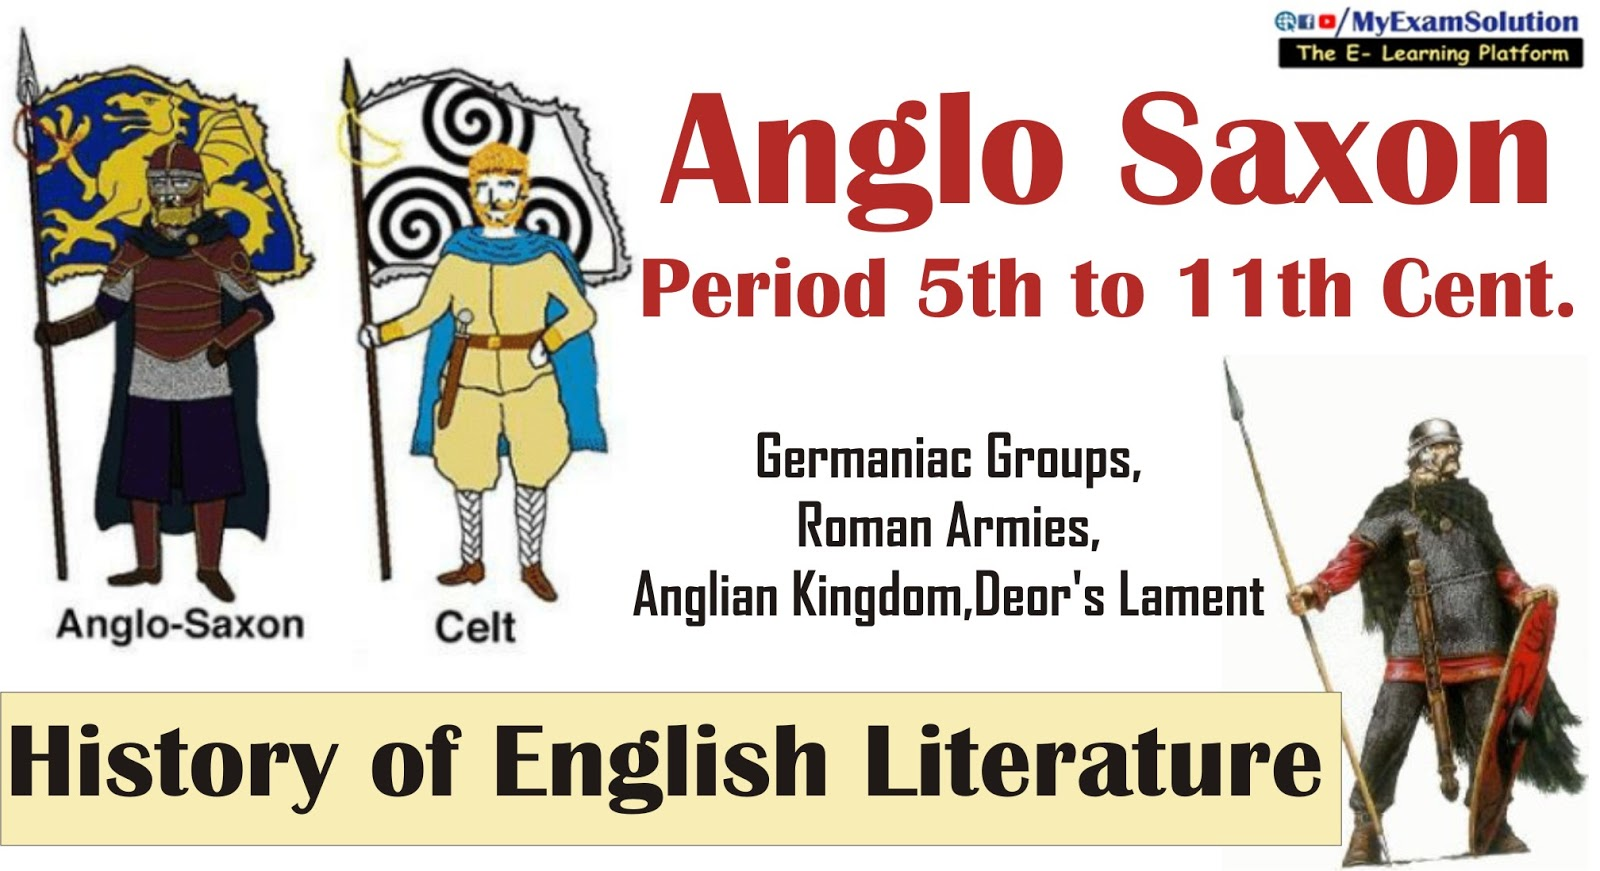 Anglo Saxon Period In History Of English Literature